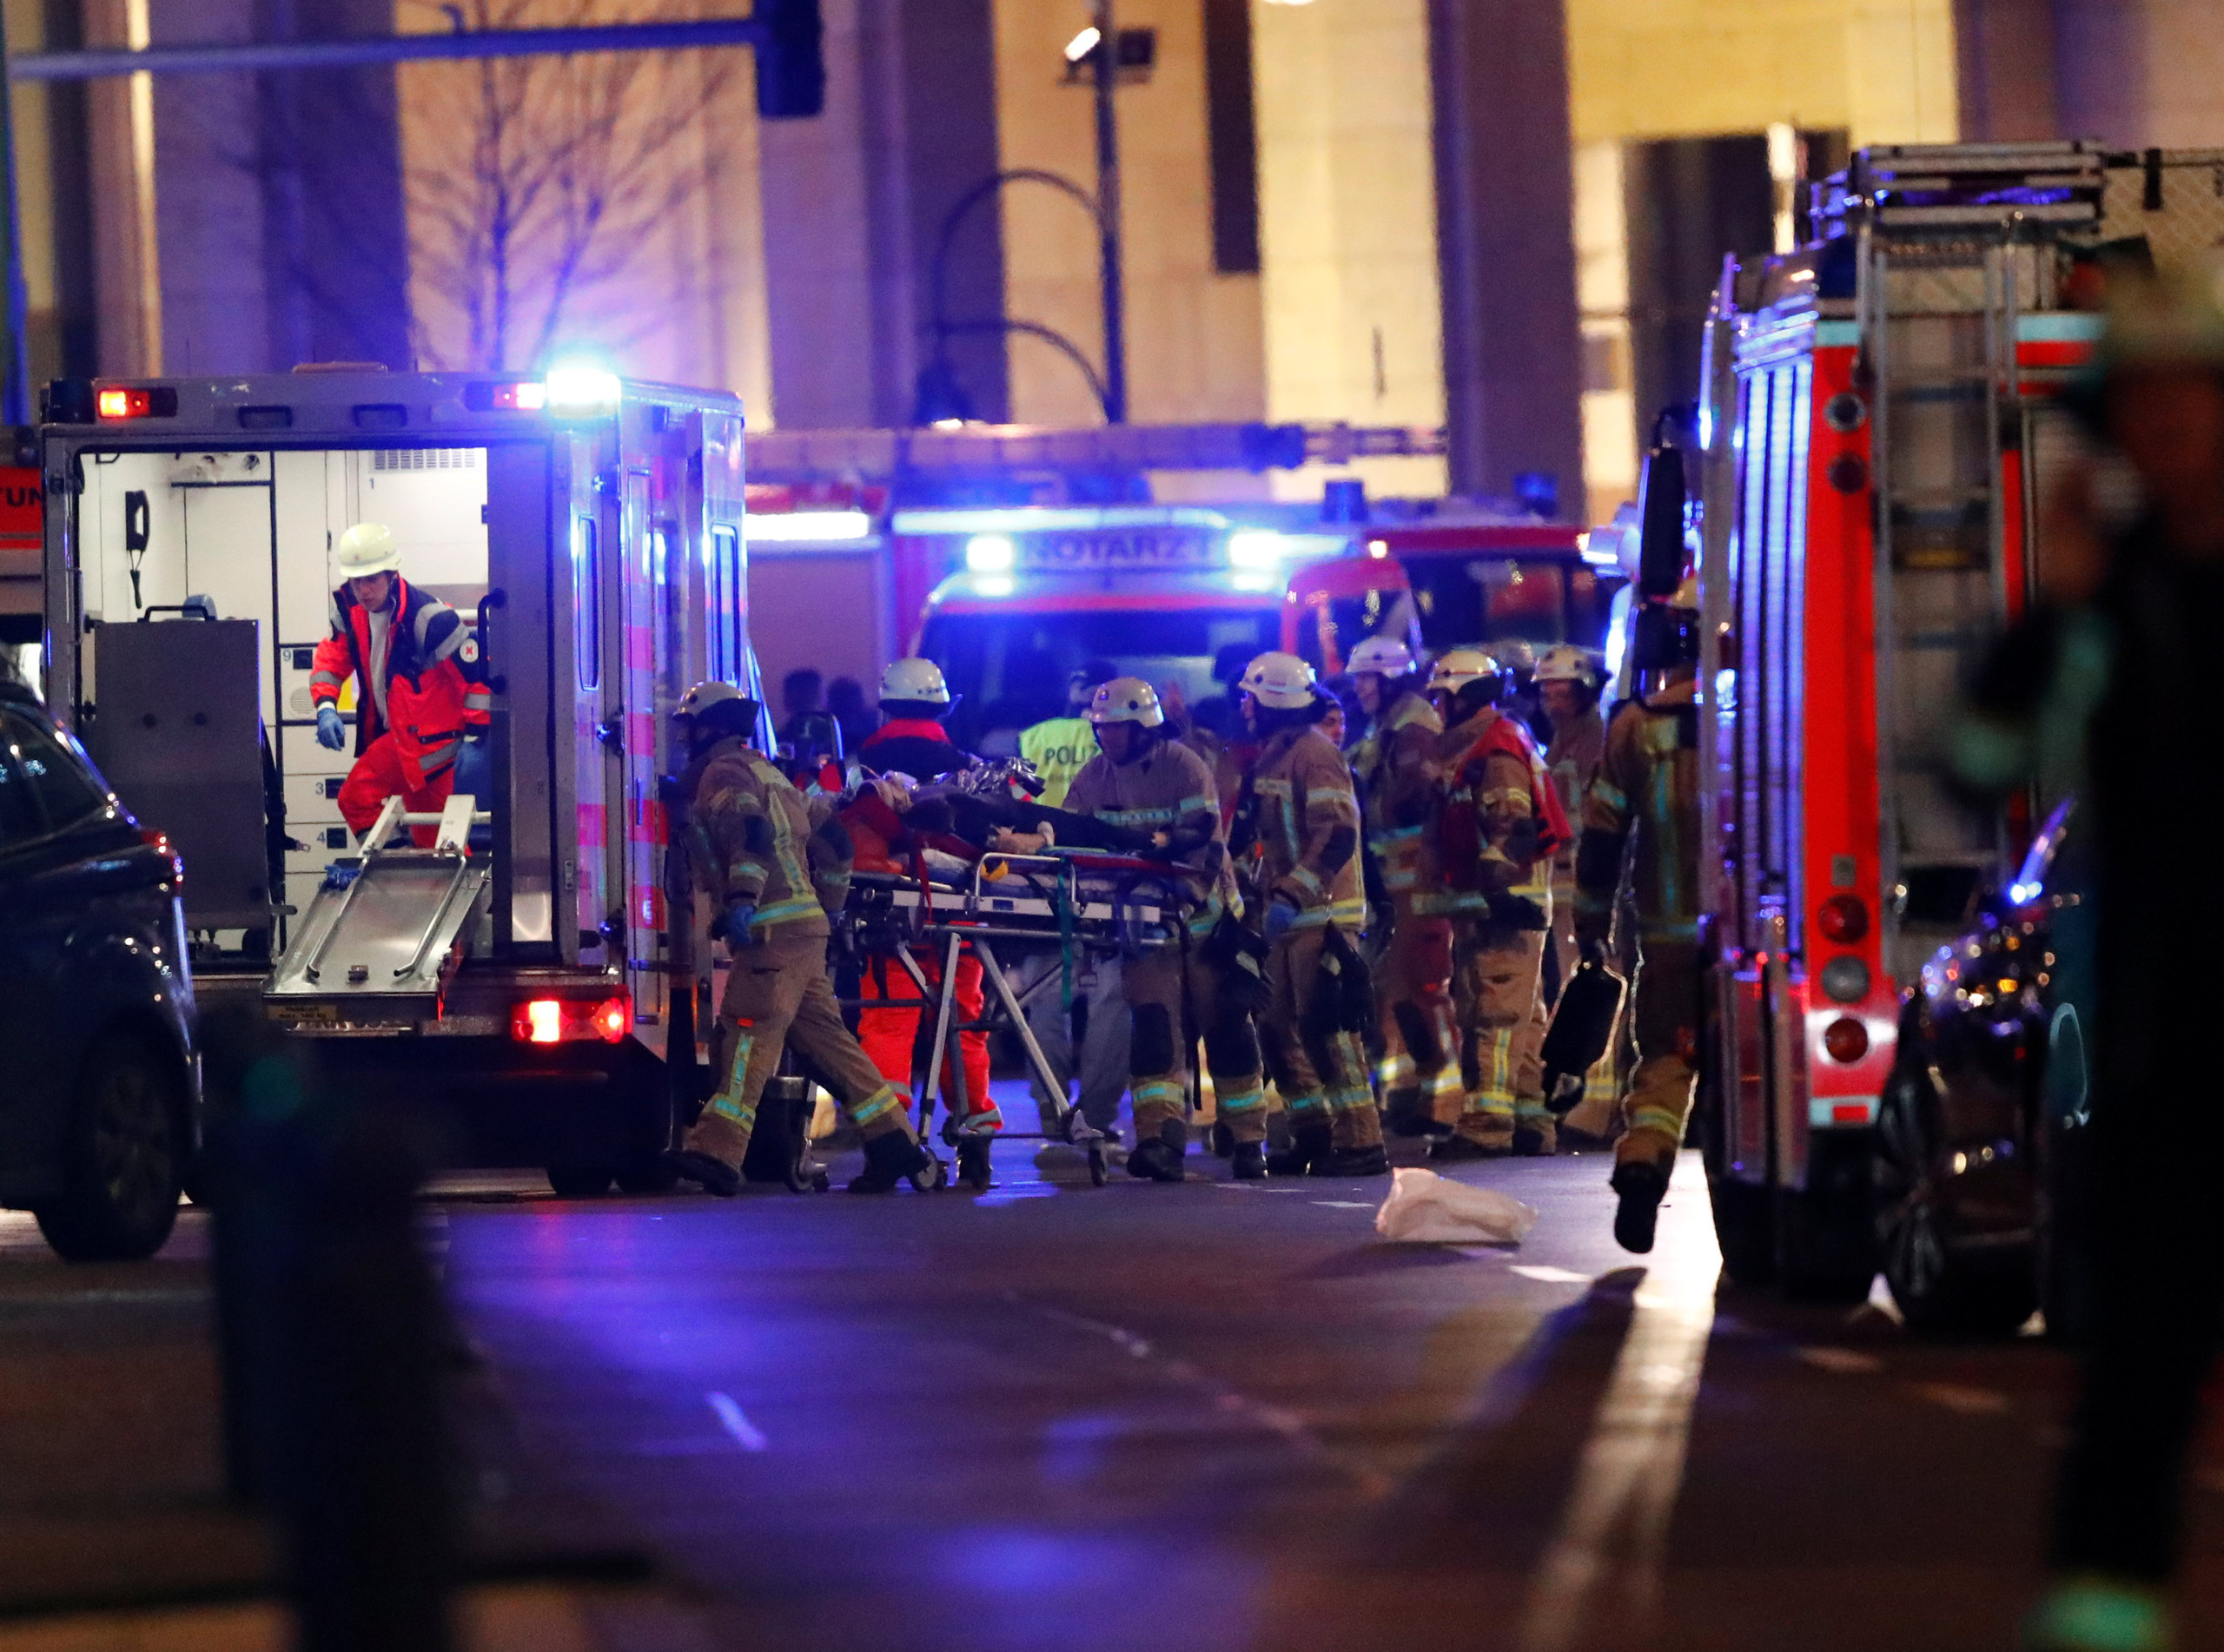 Police and emergency workers are at the site of an accident at a Christmas market on Breitscheidplatz square near the fashionable Kurfuerstendamm avenue in the west of Berlin, Germany, December 19, 2016.   REUTERS/Fabrizio Bensch